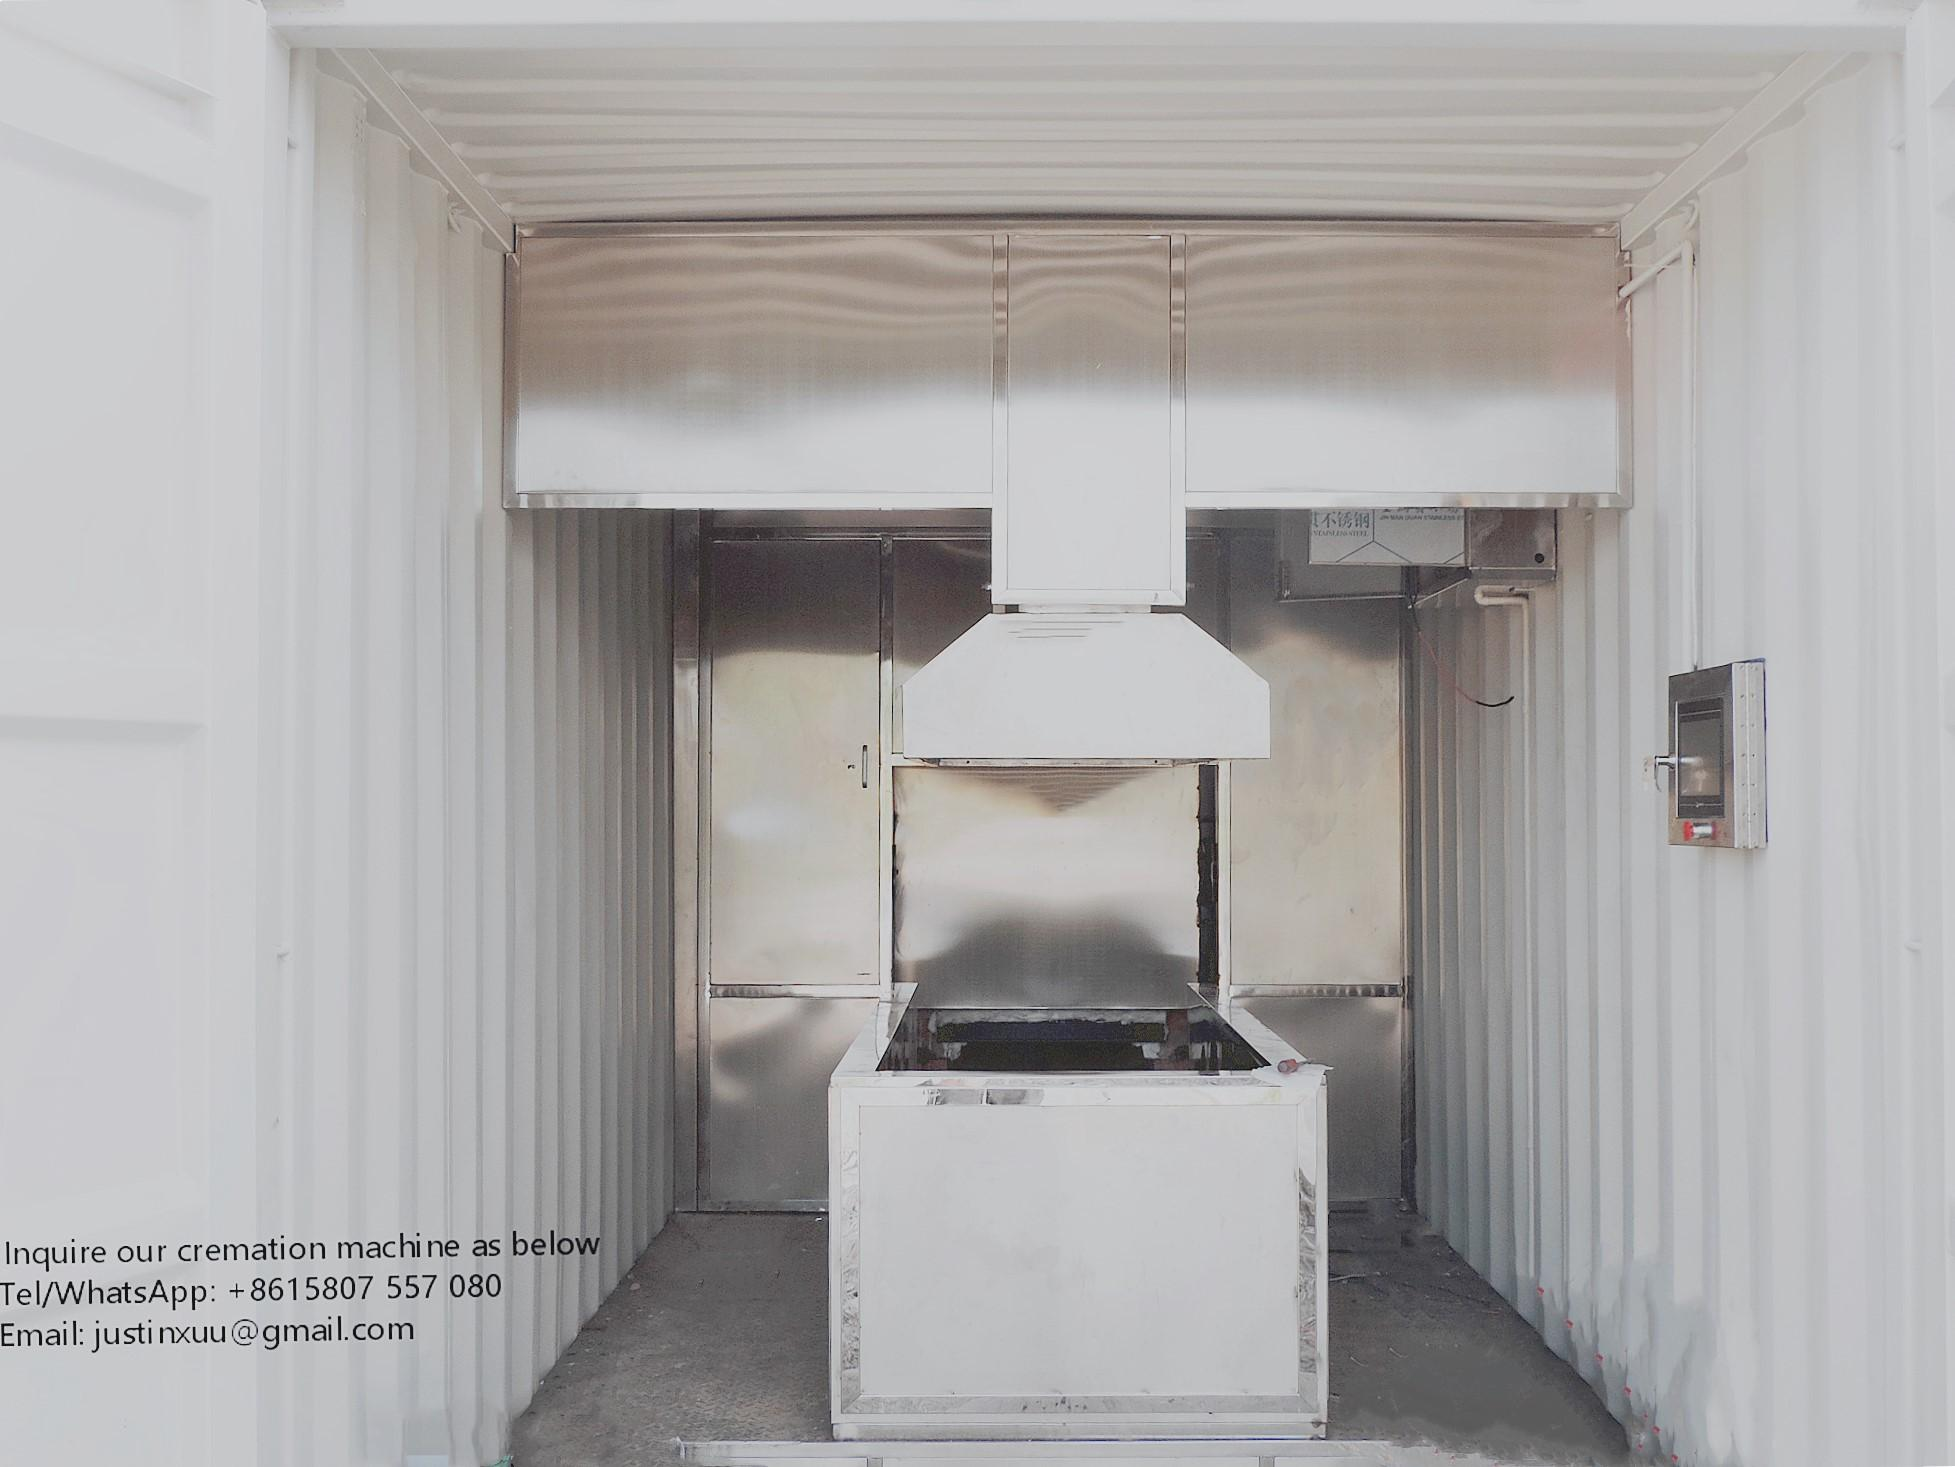 heavy duty durable human cremate machine china designed for Malaysia market 4